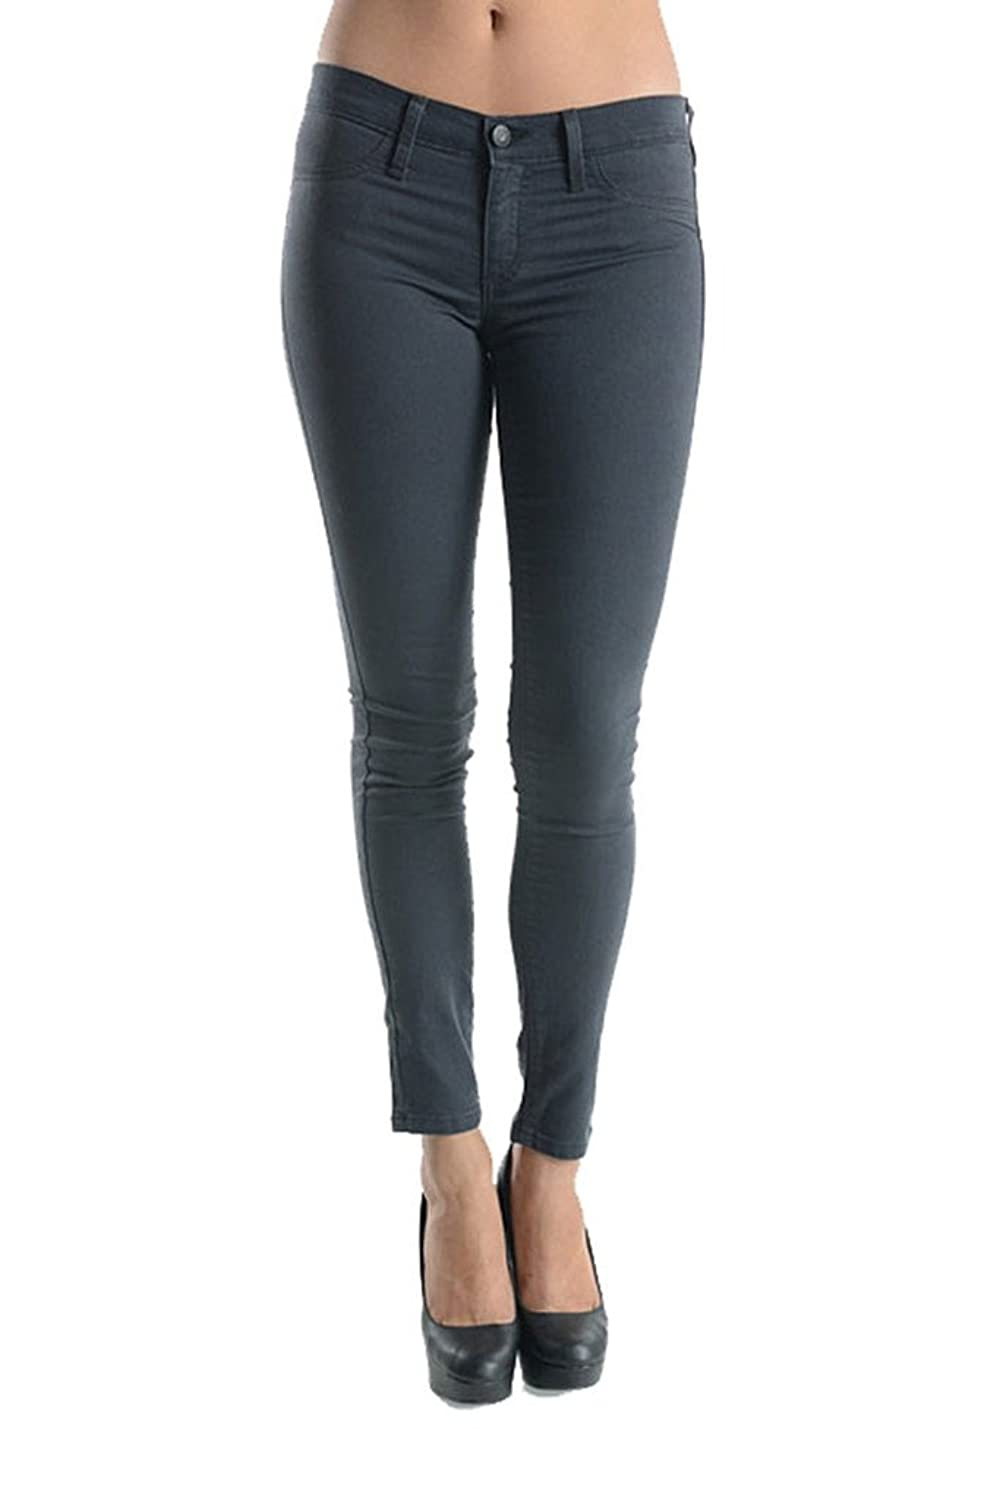 156c7b52dc 70%OFF Kan Can Women's Classic Mid Rise Skinny Jeans Grey KC663GR ...